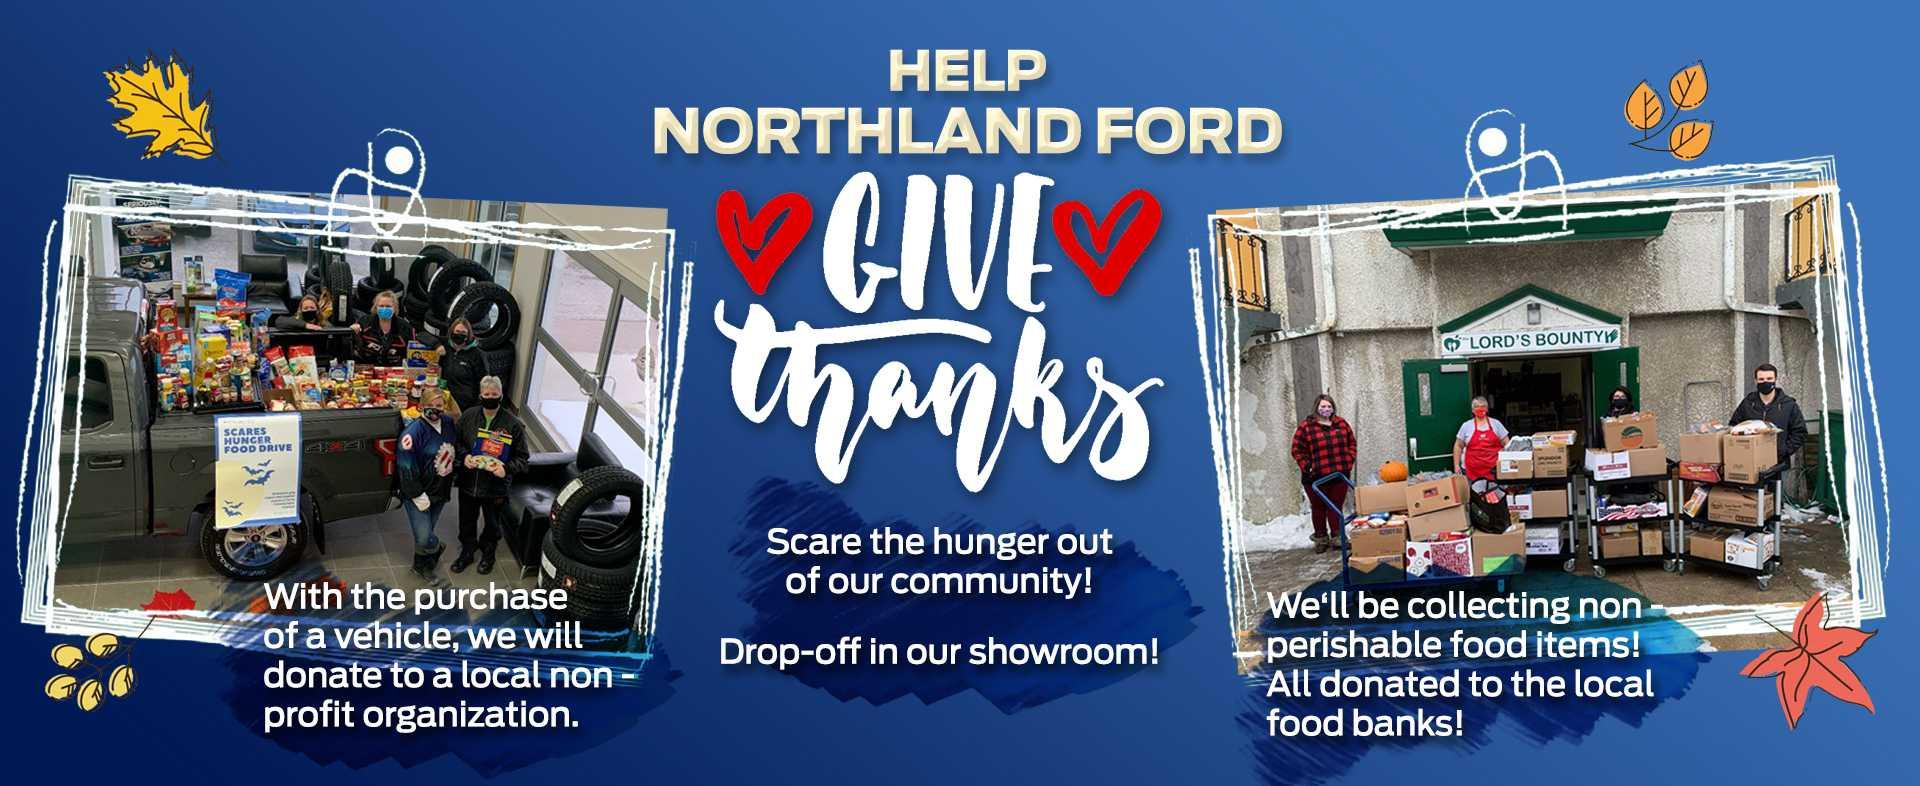 Help Northland Ford Give Thanks - The Pas & Flin Flon Food Drive